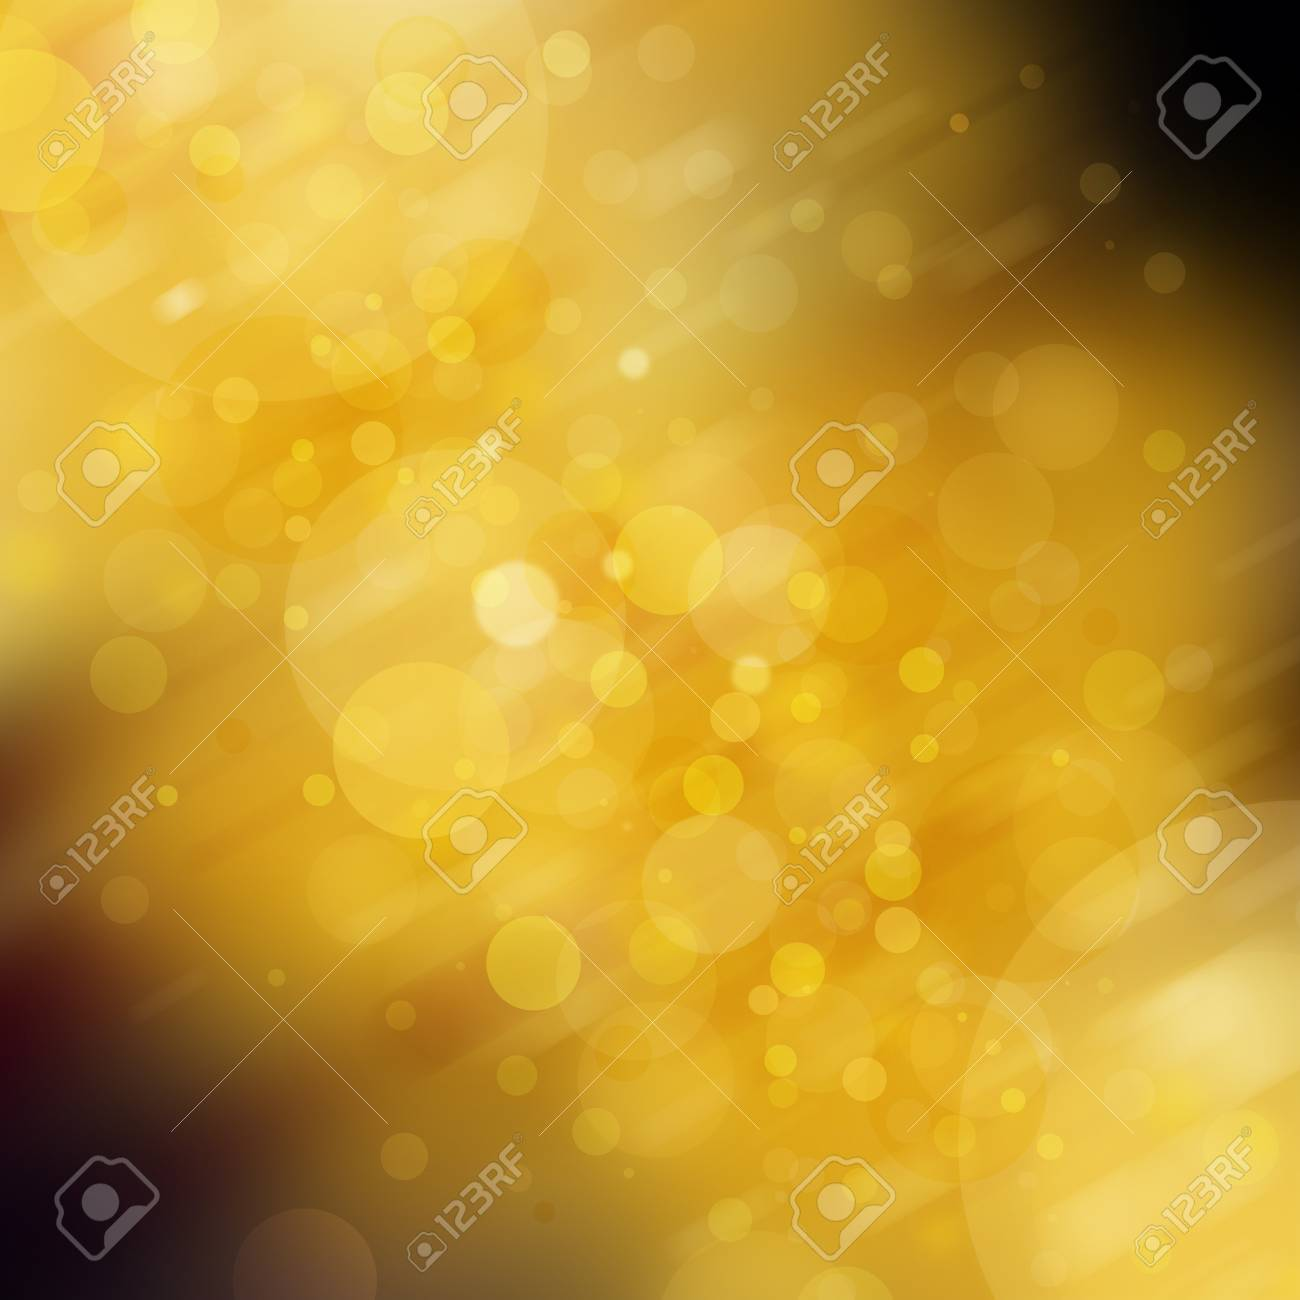 Elegant Gold Circles On Blurred Yellow And Black Background White Bokeh Lights With Diagonal Slanted Motion Blur Shiny Glittering Balls Of Light Christmas Background Stock Photo Picture And Royalty Free Image Image